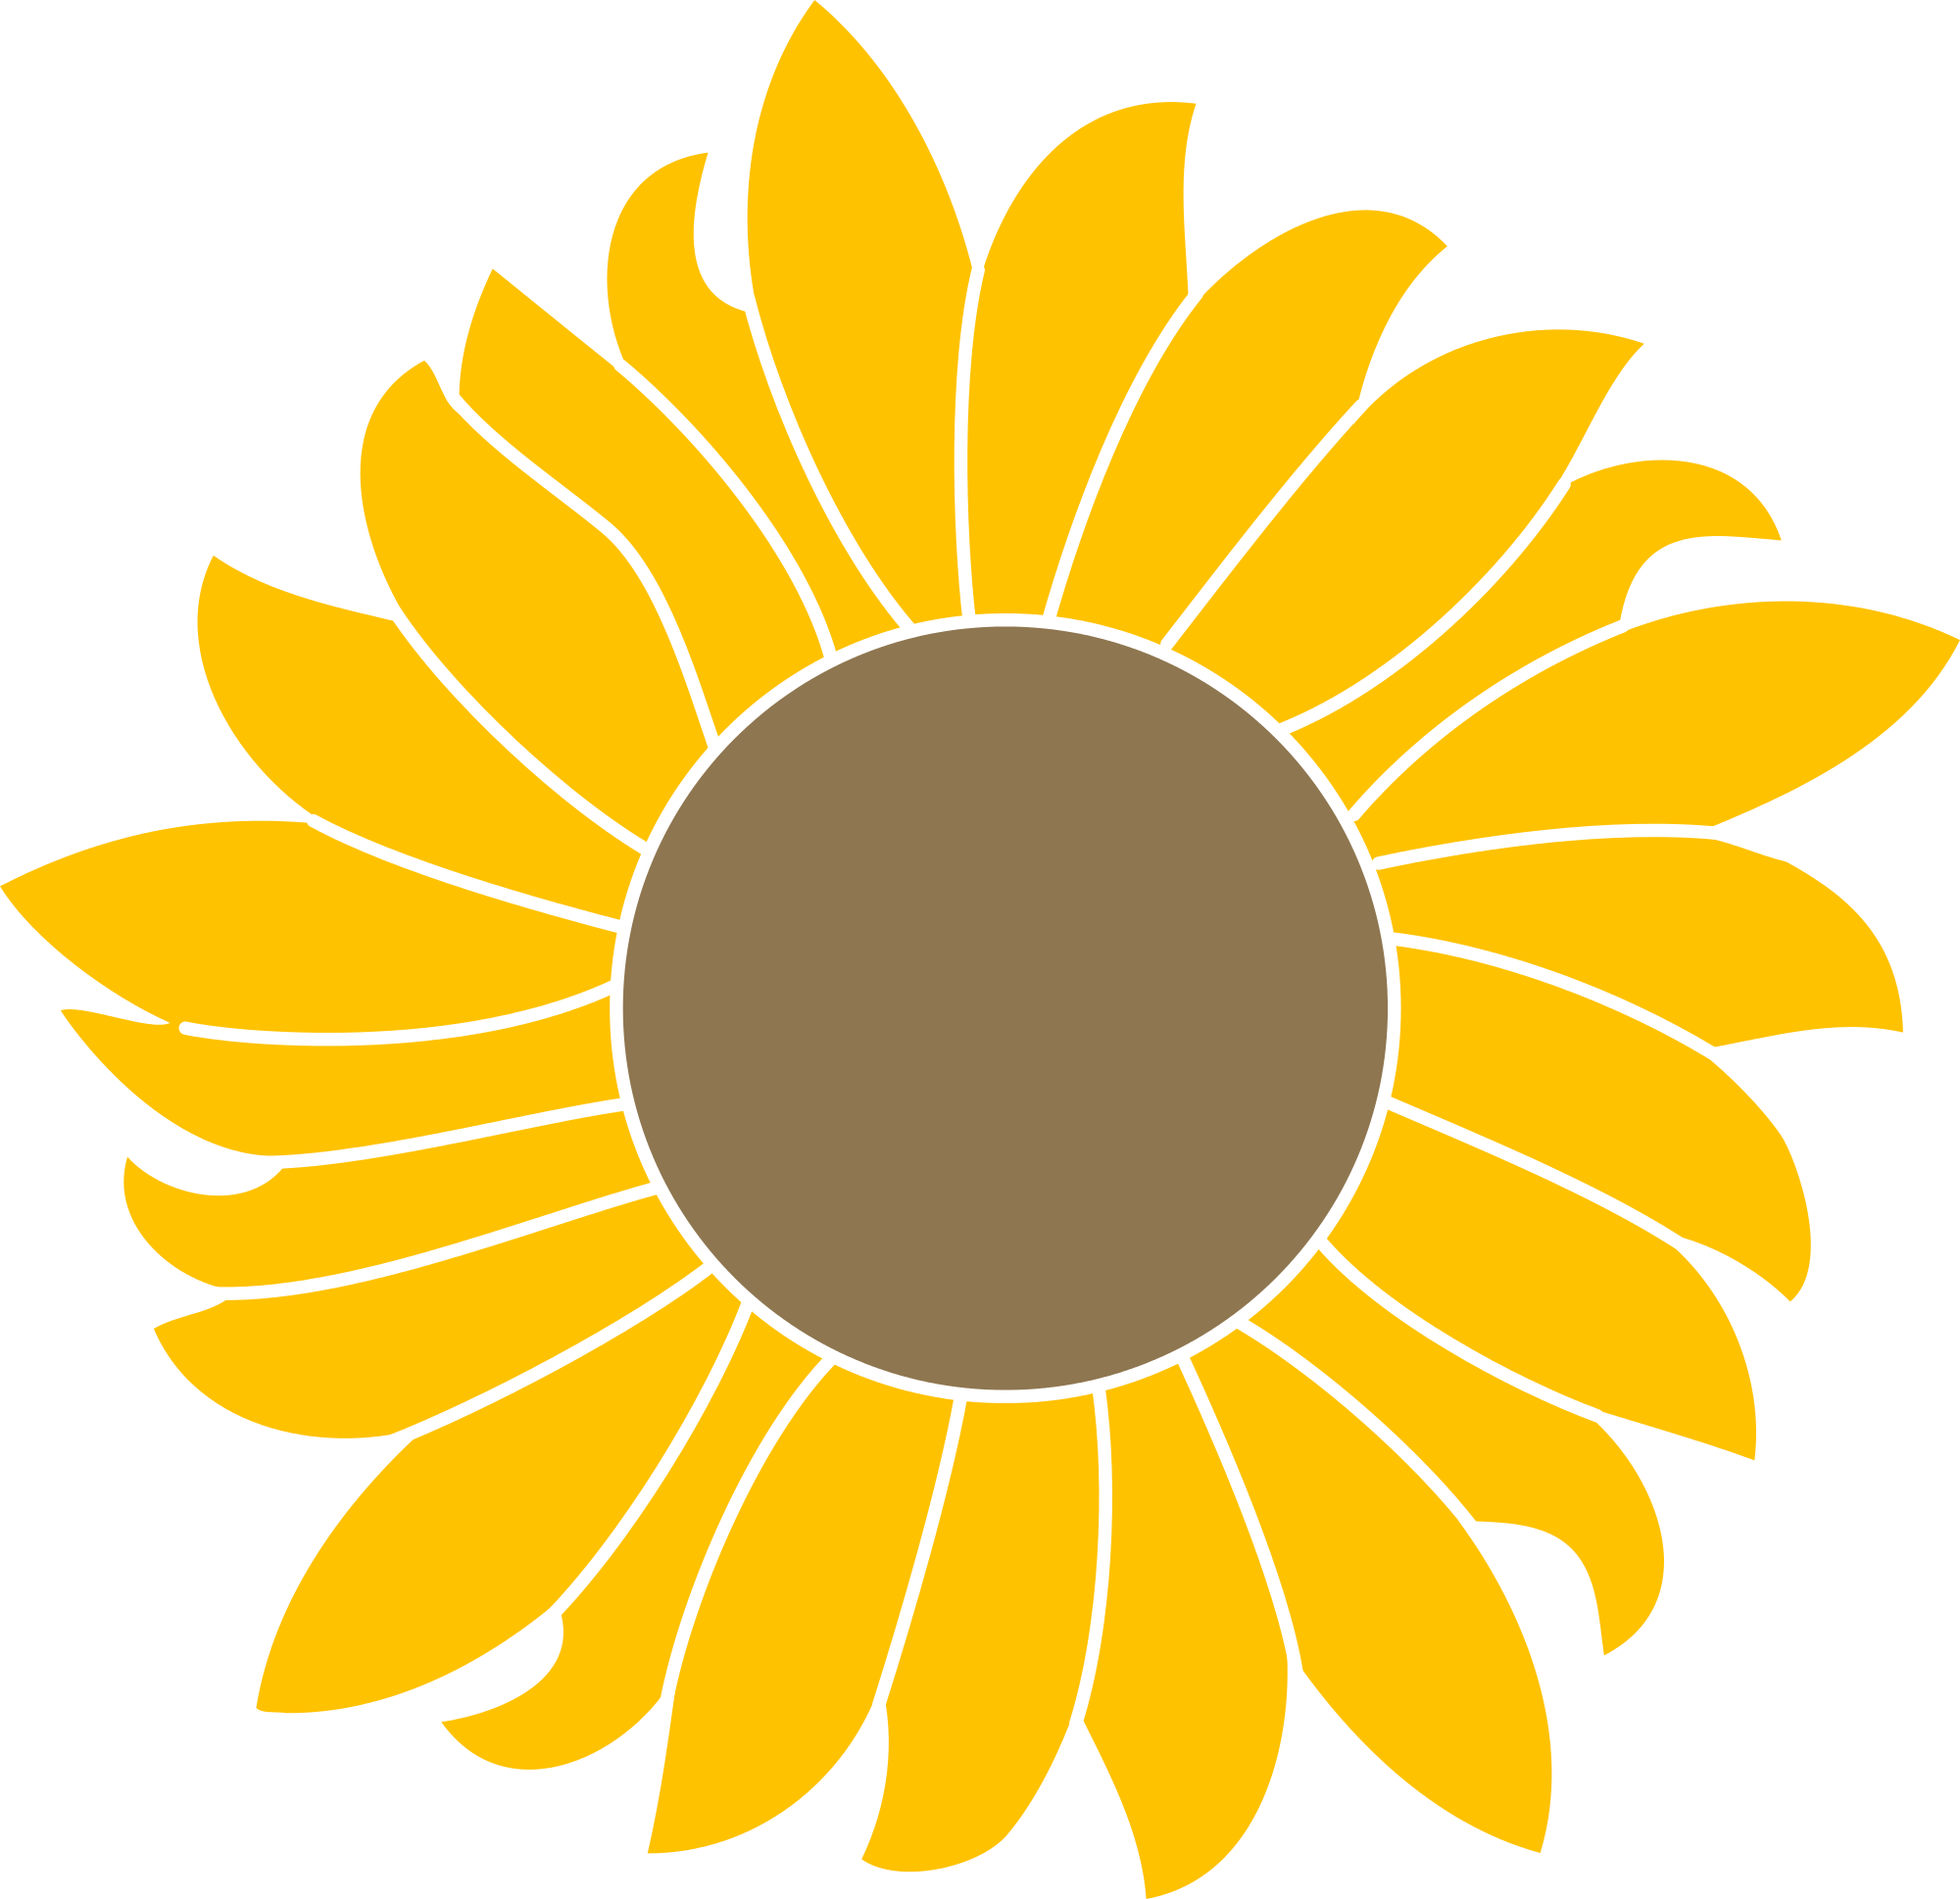 Common sunflower Scalable Vector Graphics Portable Network.